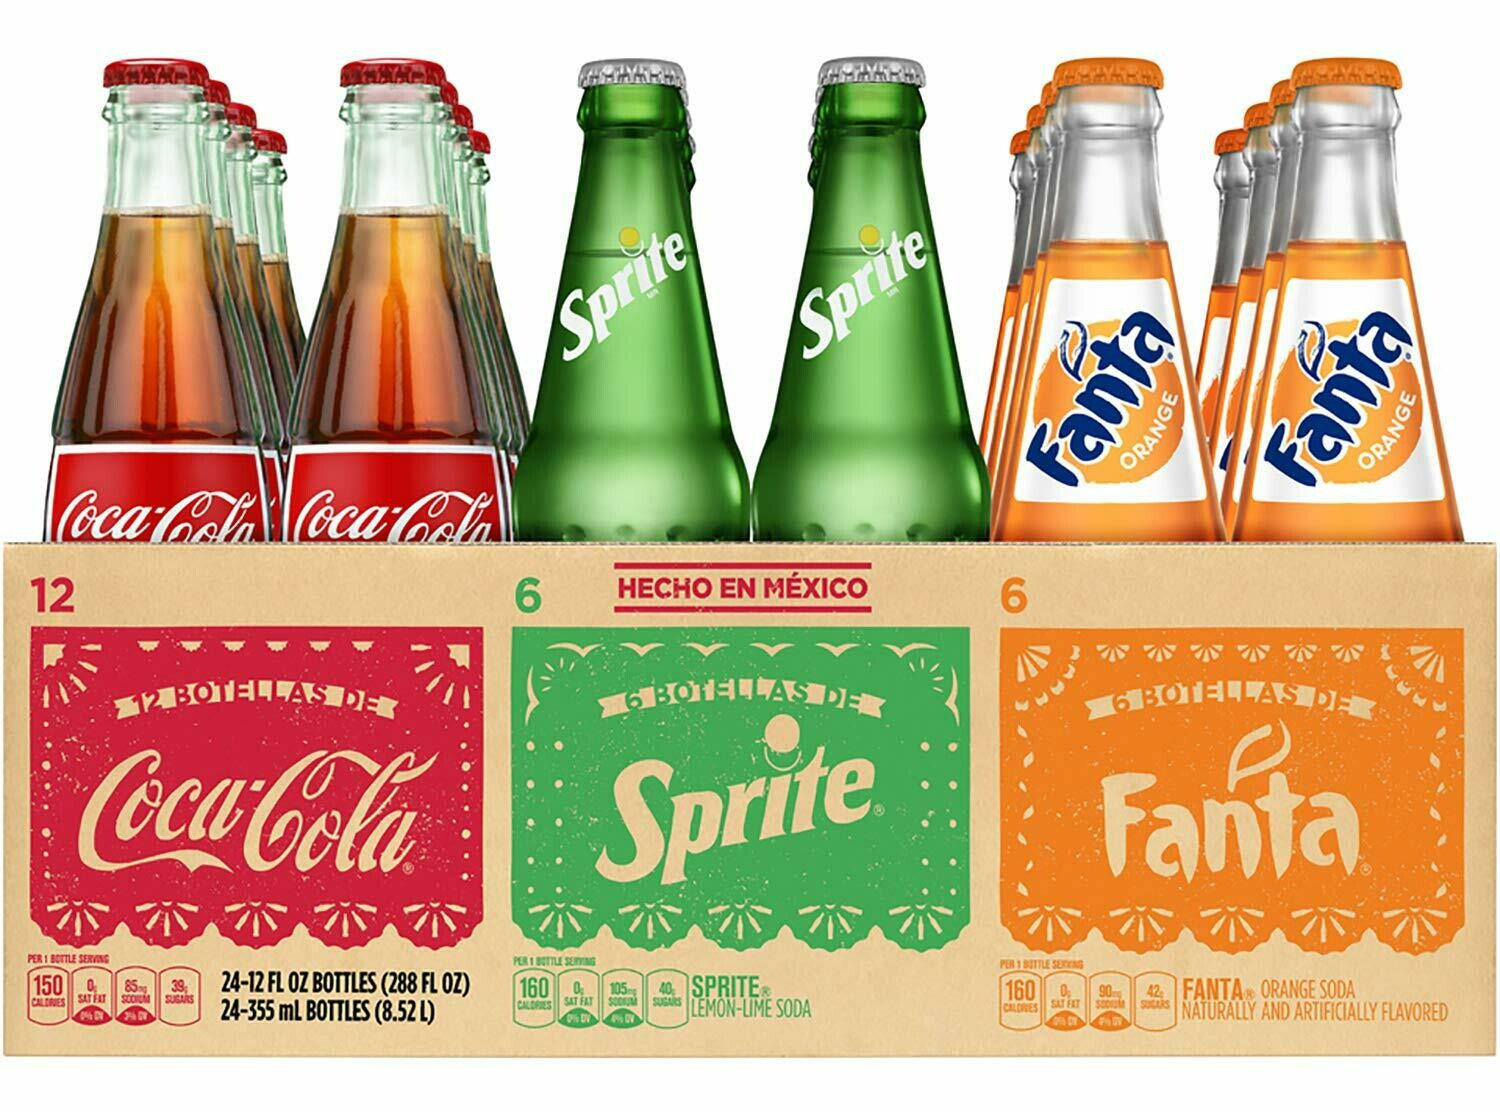 * Mexican Fiesta Variety Pack Of Soda 24-12 Ounces Glass Bottles